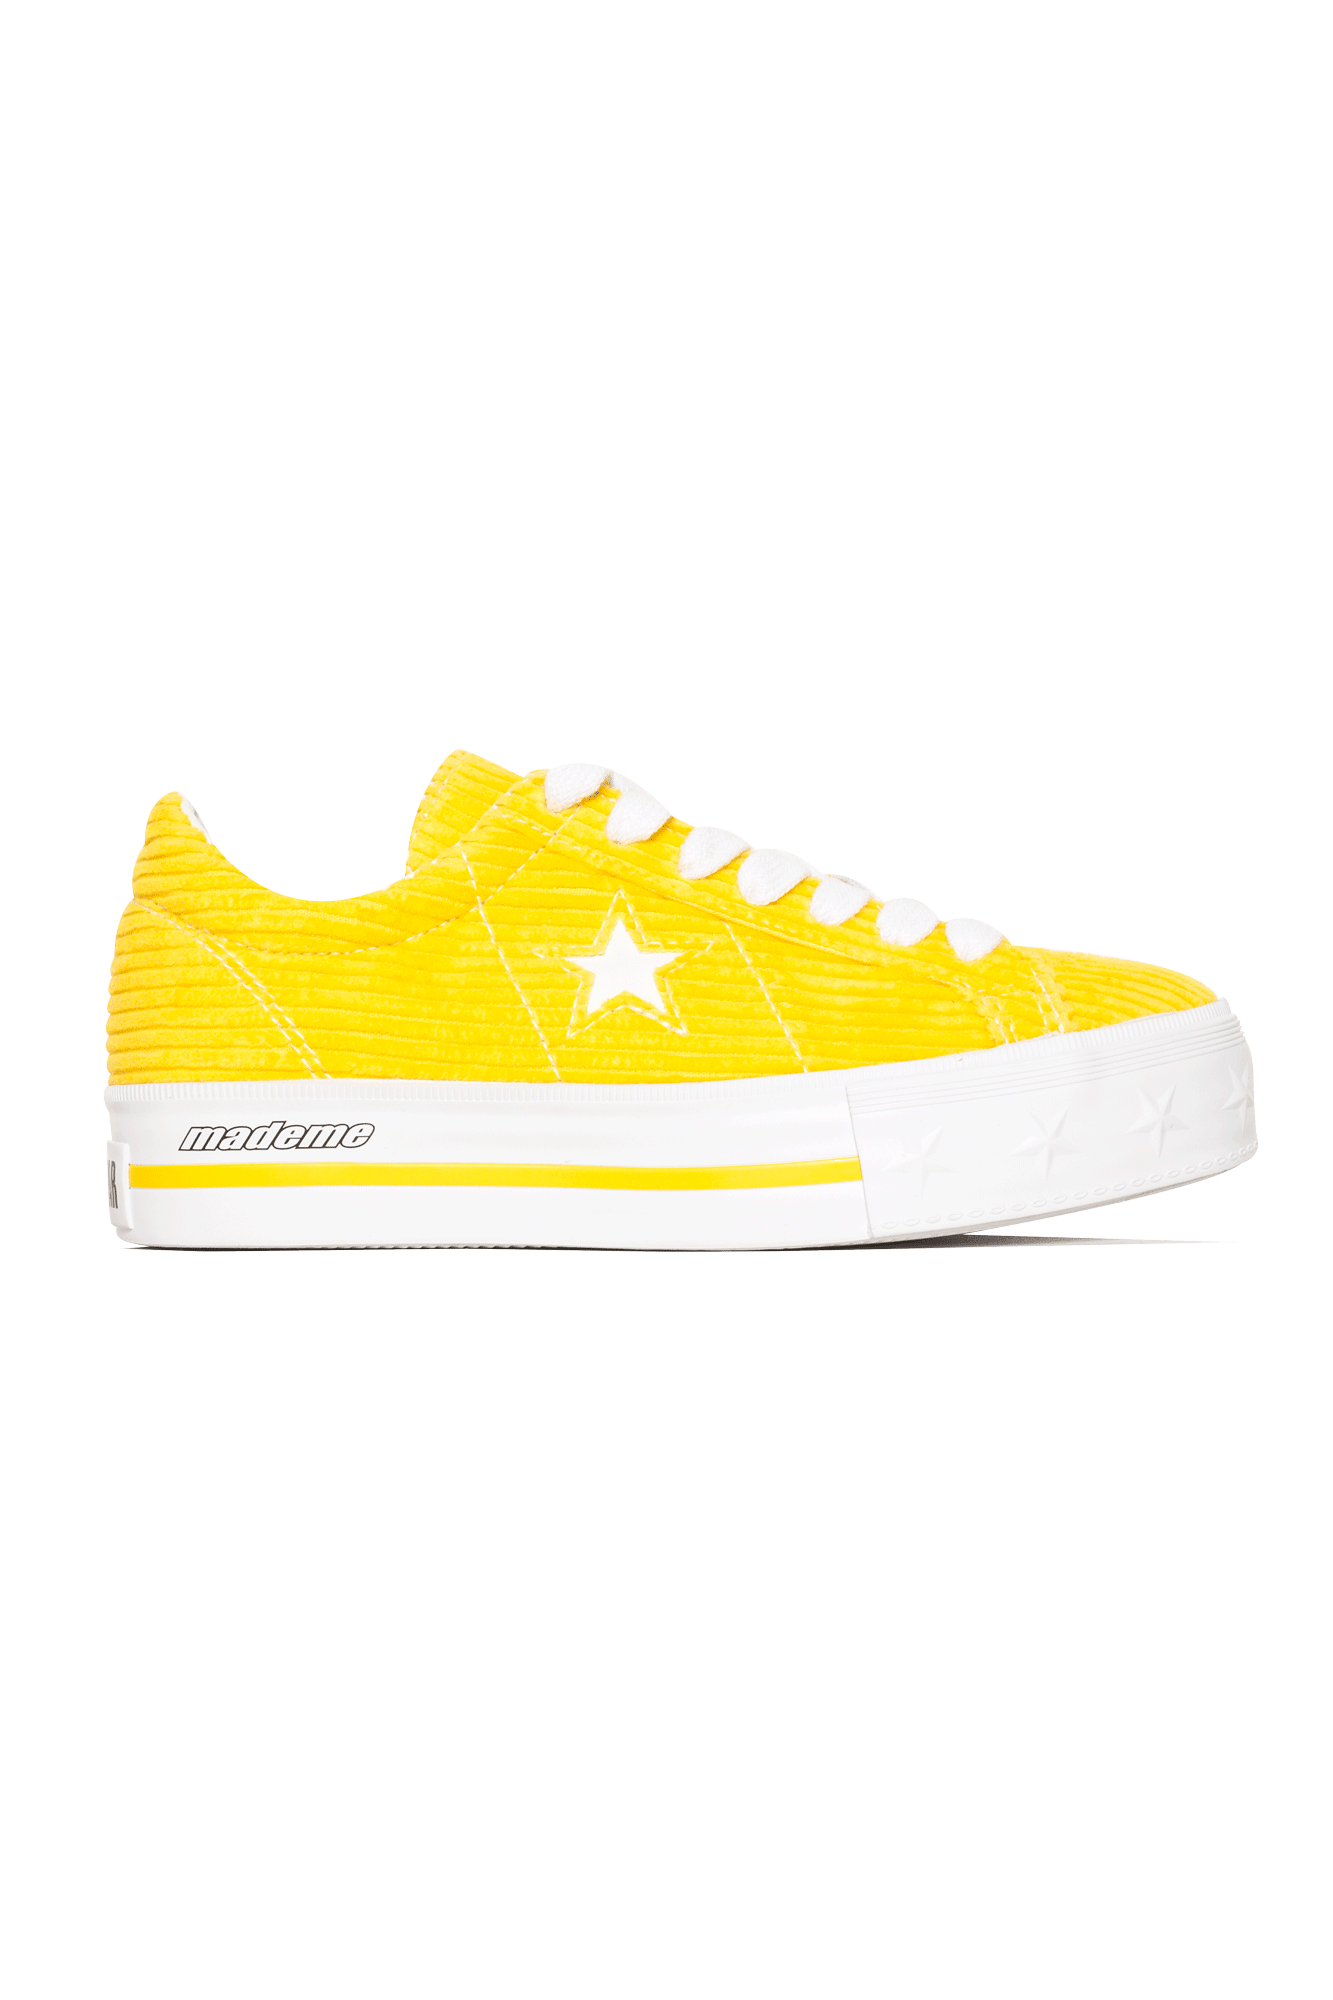 Converse Sneakers One Star Platform Ox X MadeMe Yellow 561393C#000#C0008#5 - One Block Down